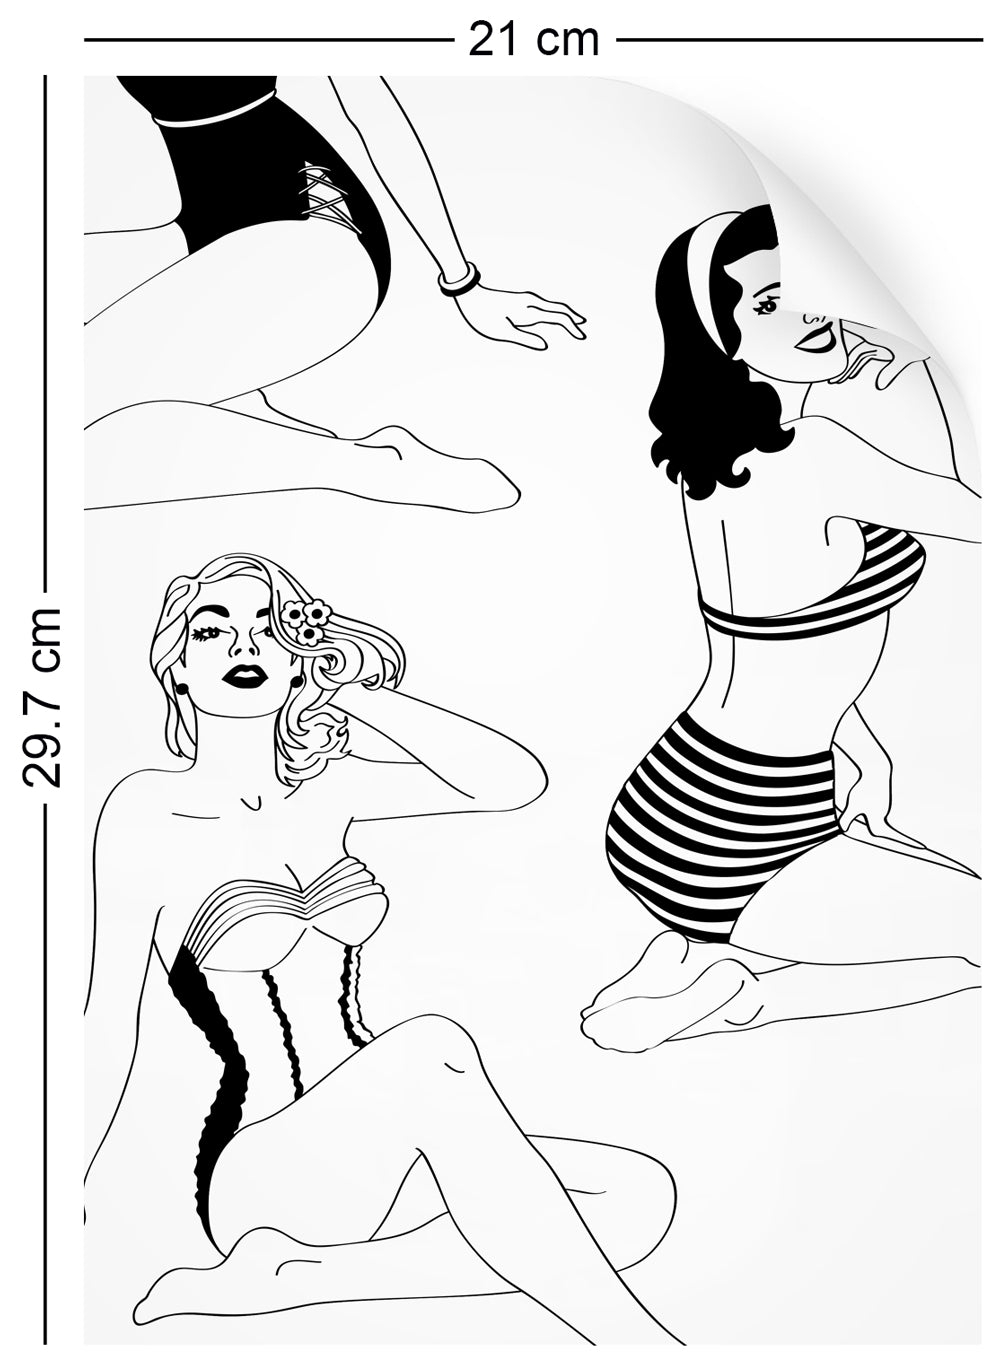 a4 wallpaper swatch with retro pinup girl design in monochrome